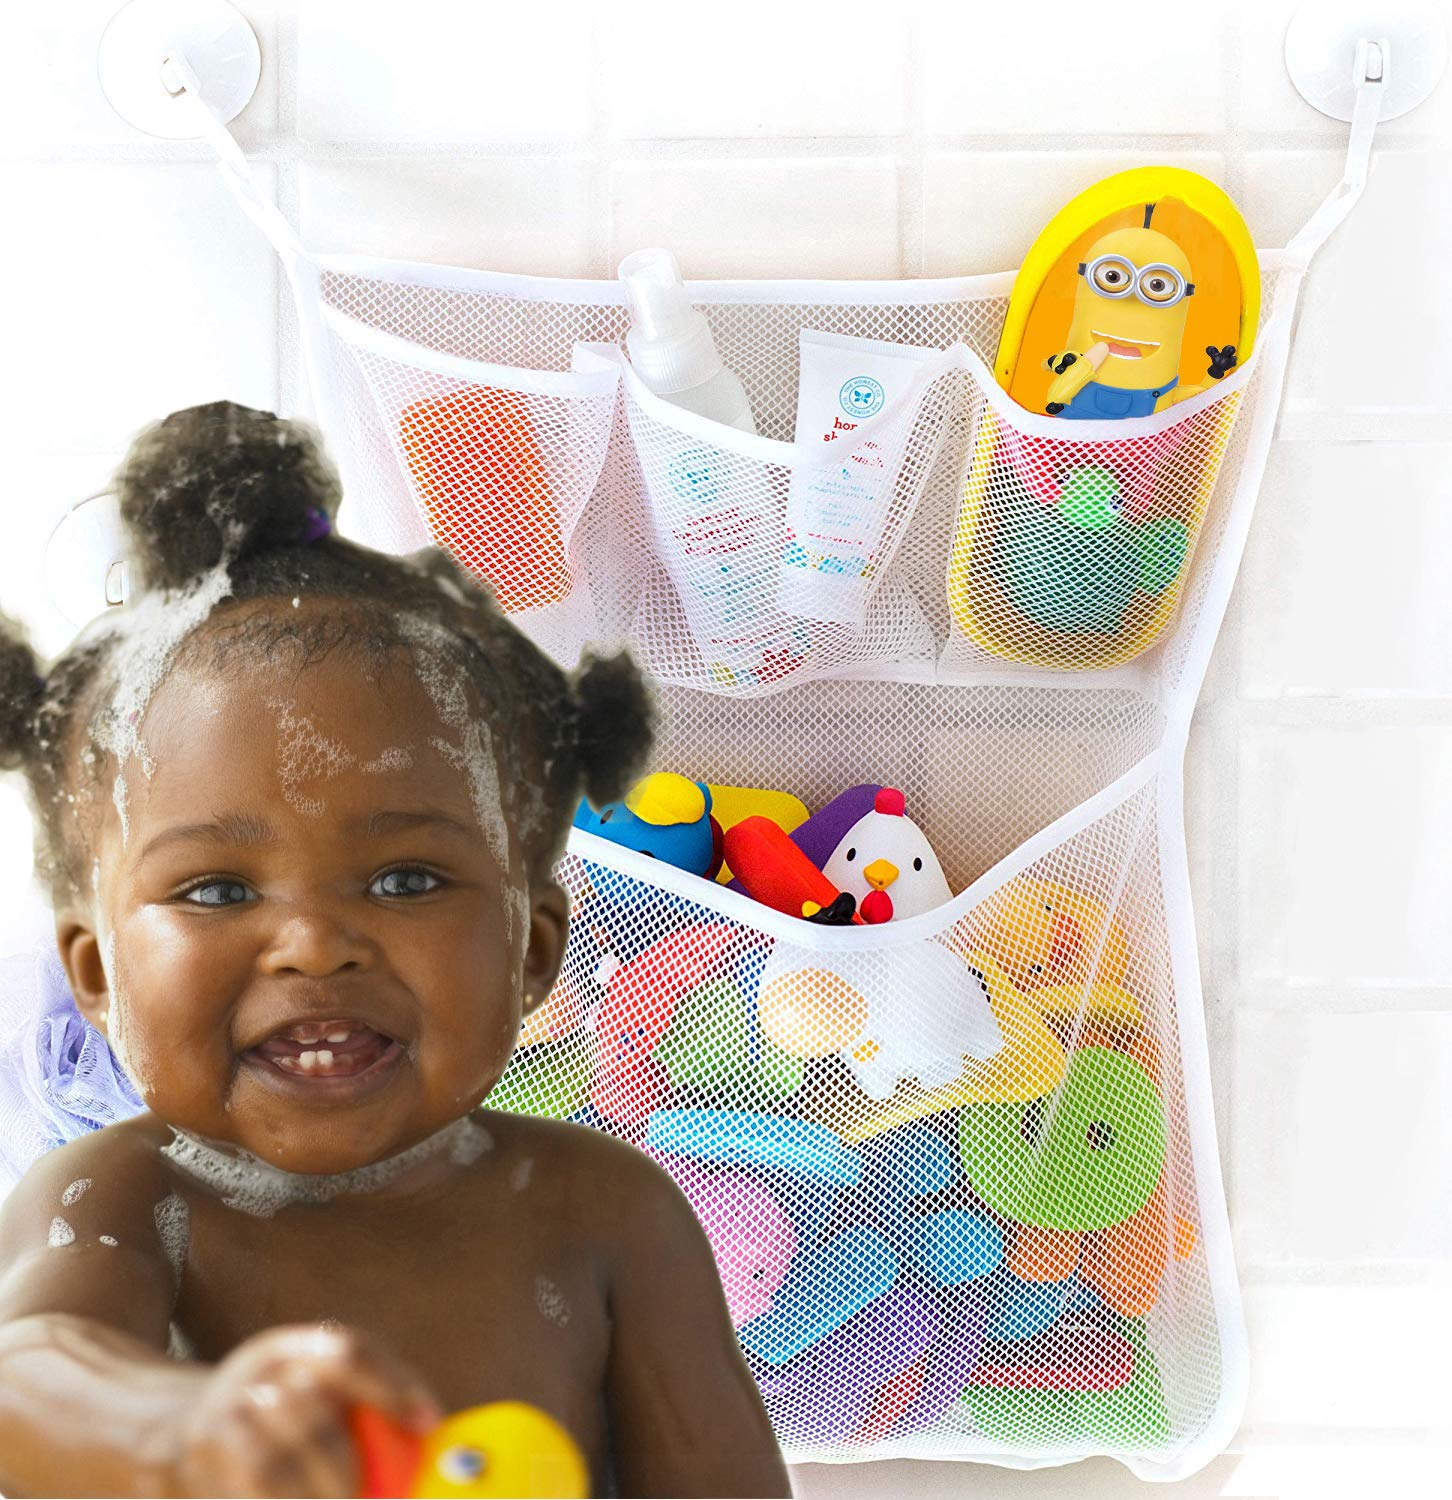 Bath Toy Organizer, Extra Durable Washable and Quick Dry Bathroom Toy Storage Basket, Tub Toy Net Holder, Baby Bathtub Toy Organizer with 2 Suction Cup Hooks, Mesh Bath Toy Bag, Cute Baby Shower Gift